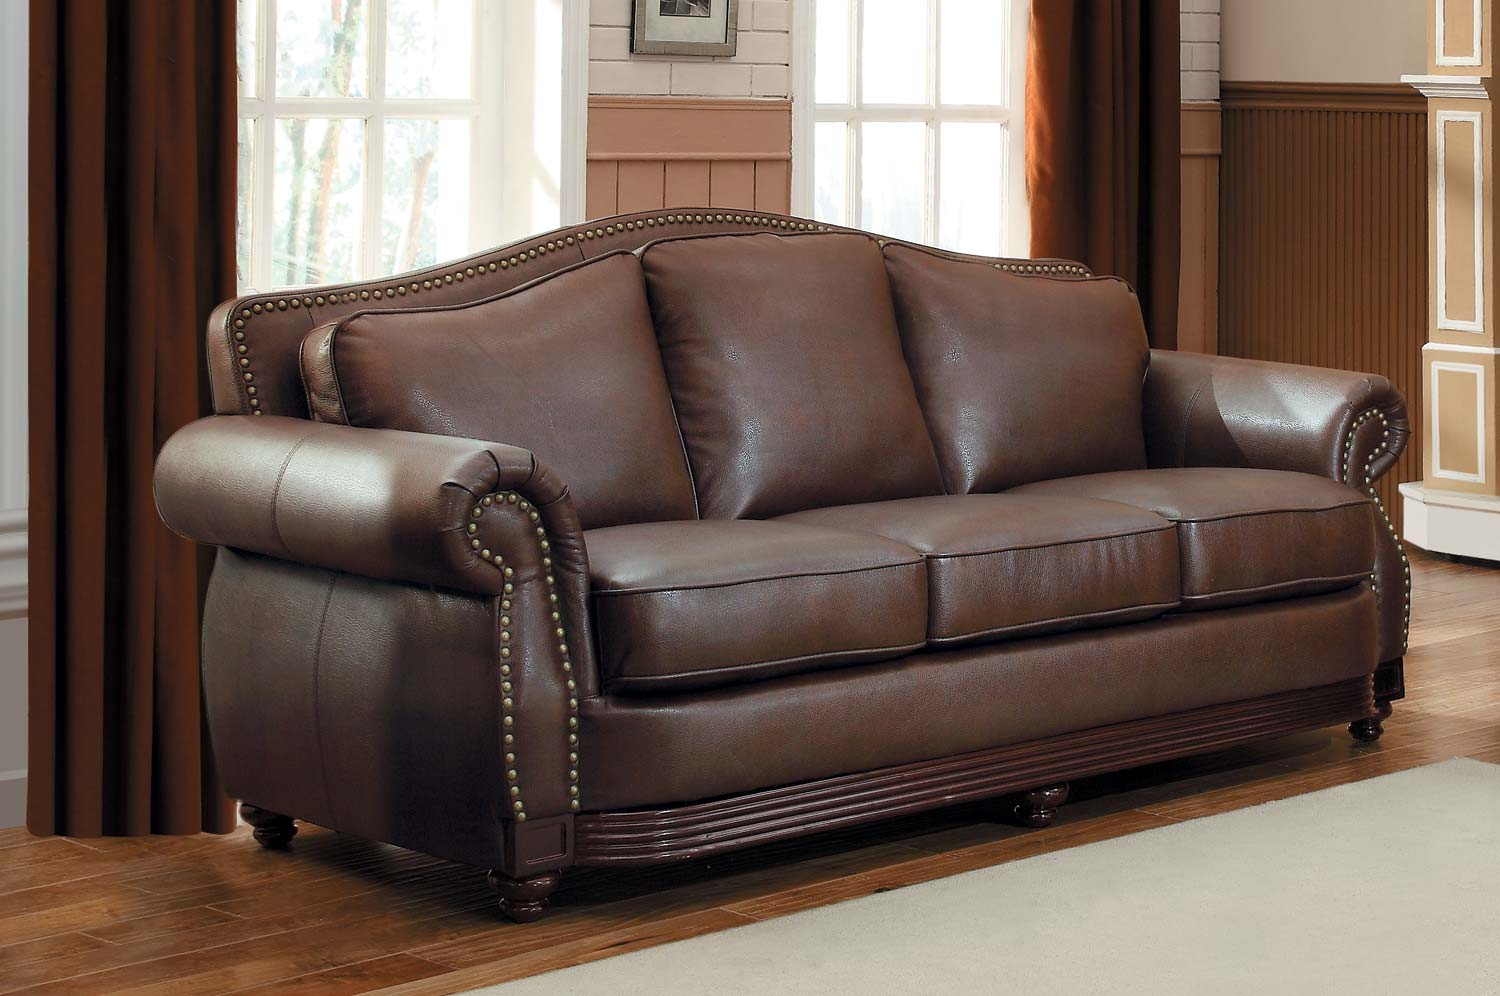 Homelegance Midwood Bonded Leather Sofa Collection Dark Brown U9616brw Sofa Set